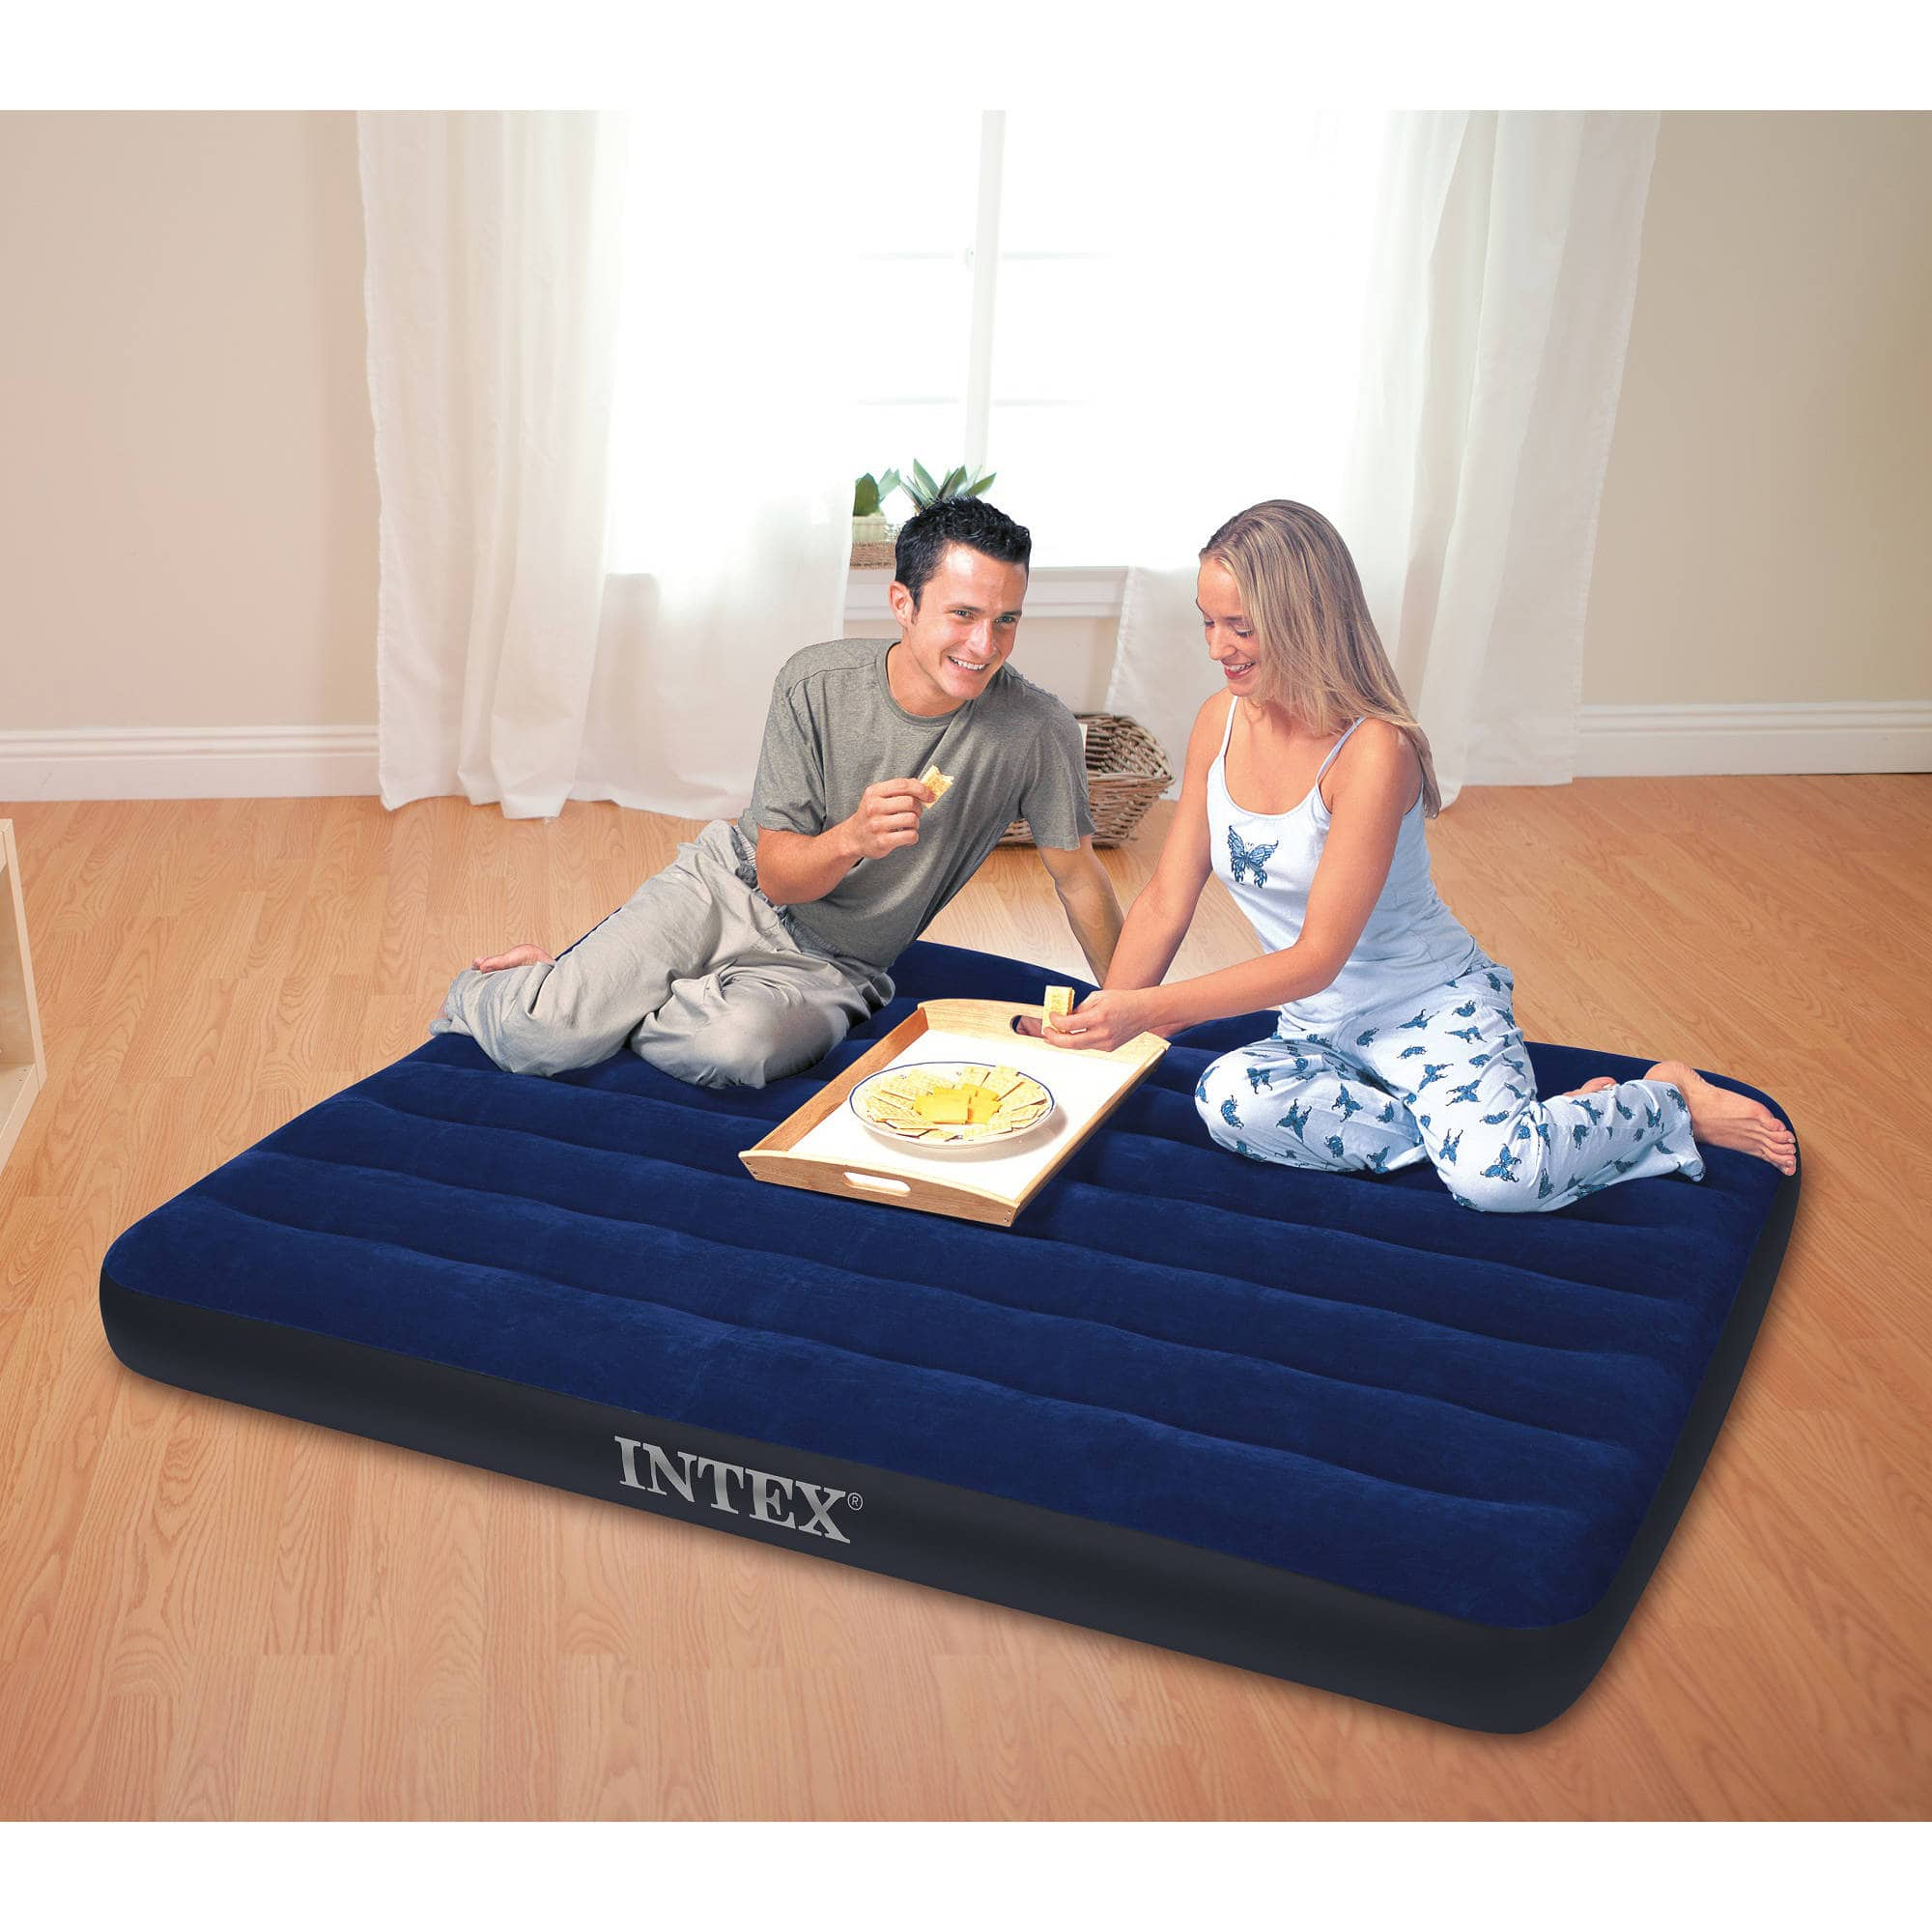 Intex Classic Downy Airbed, Full $6.93